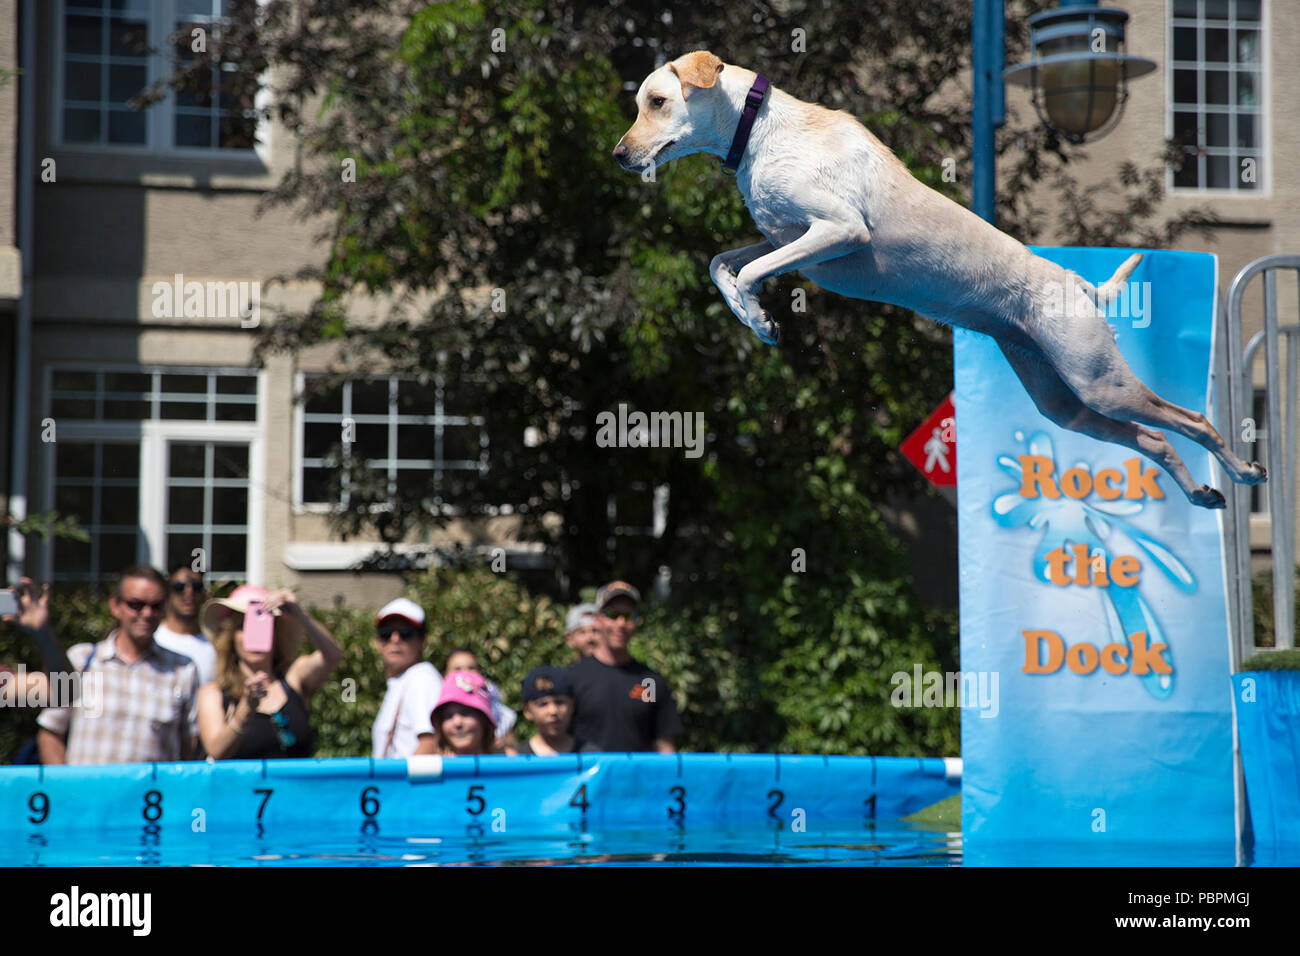 Calgary, Canada. 28th July, 2018.  Dog leaps into a pool during a jumping event. Canine watersports are part of Pet-a-Palooza, an outdoor pet festival. Rosanne Tackaberry/Alamy Live News - Stock Image